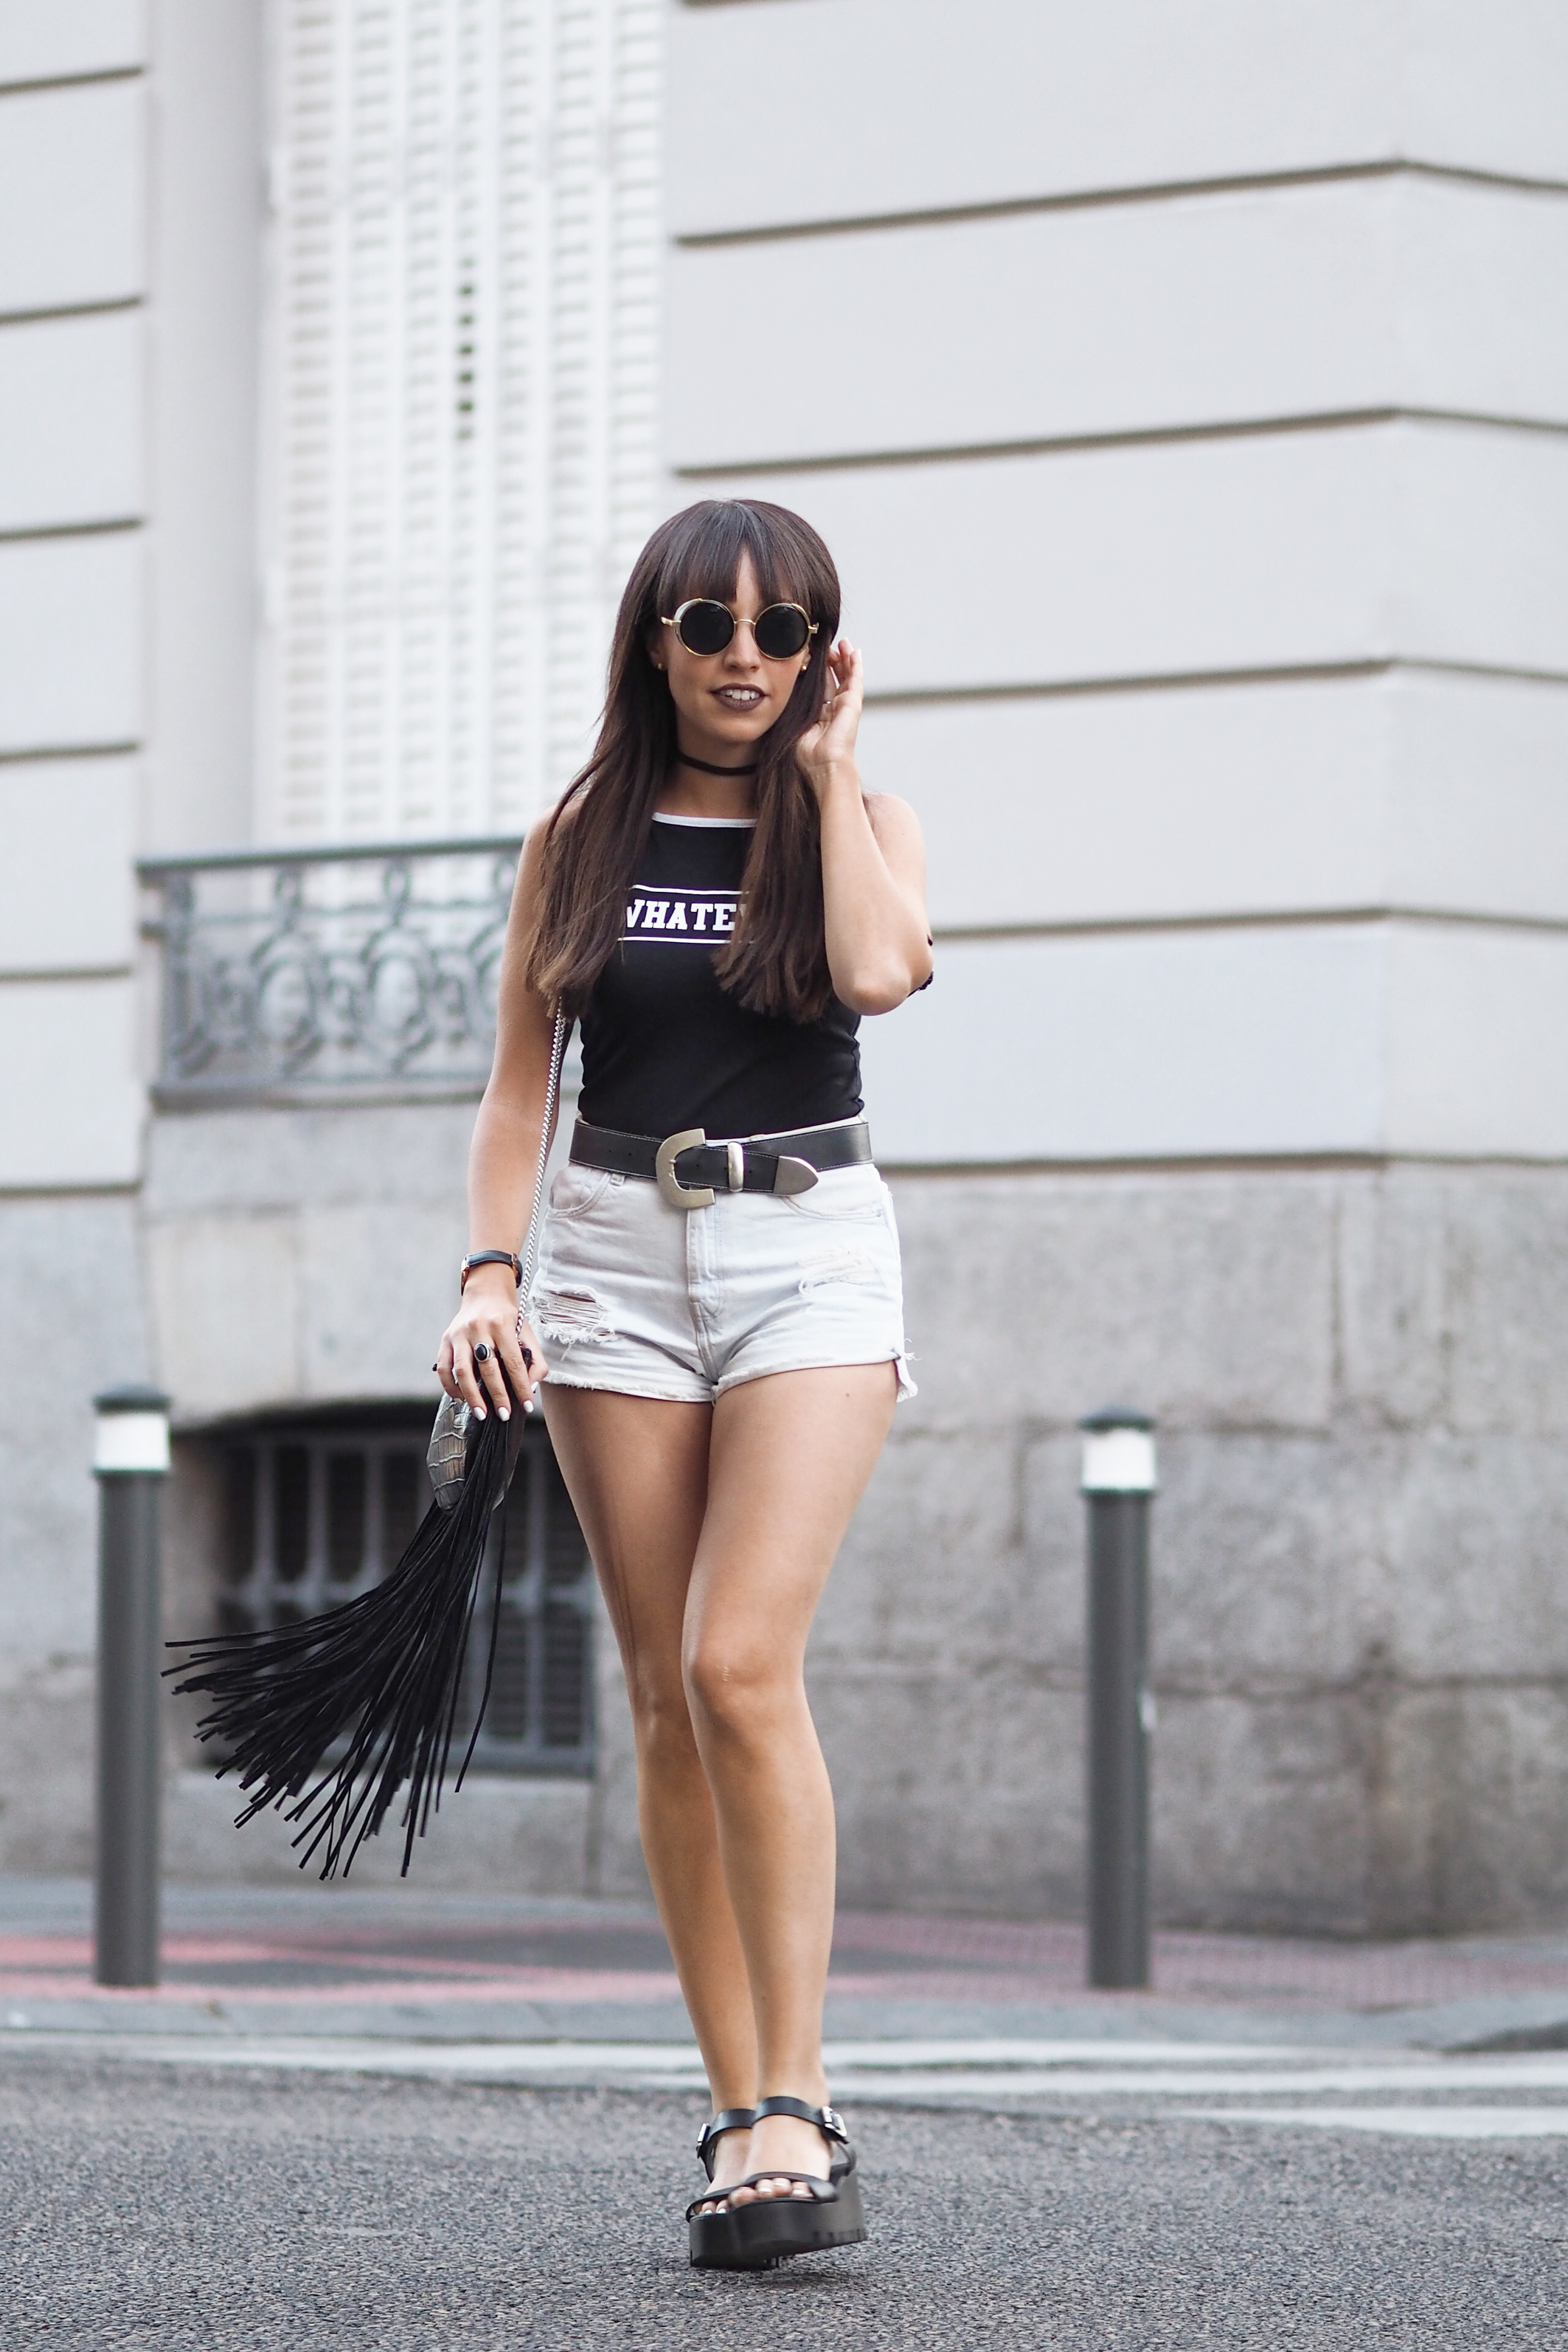 black bodysuit whatever, ripped denim shorts, chunky sandals, chocker necklace, summer outfit, street style